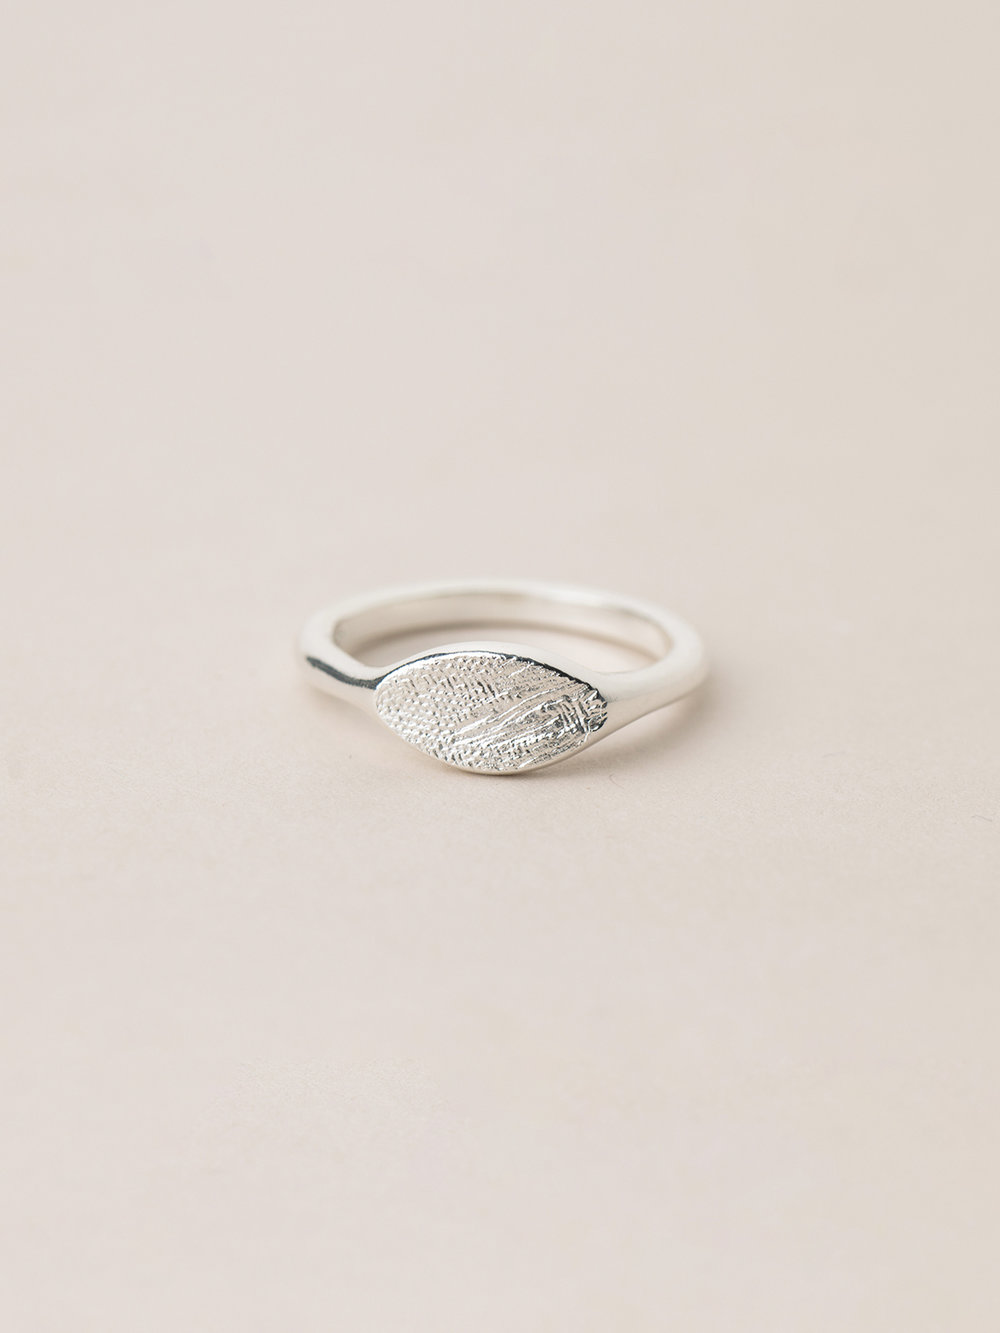 Breiter Amia Ring in 925 Silber  Signet ring Amia in sterling silver